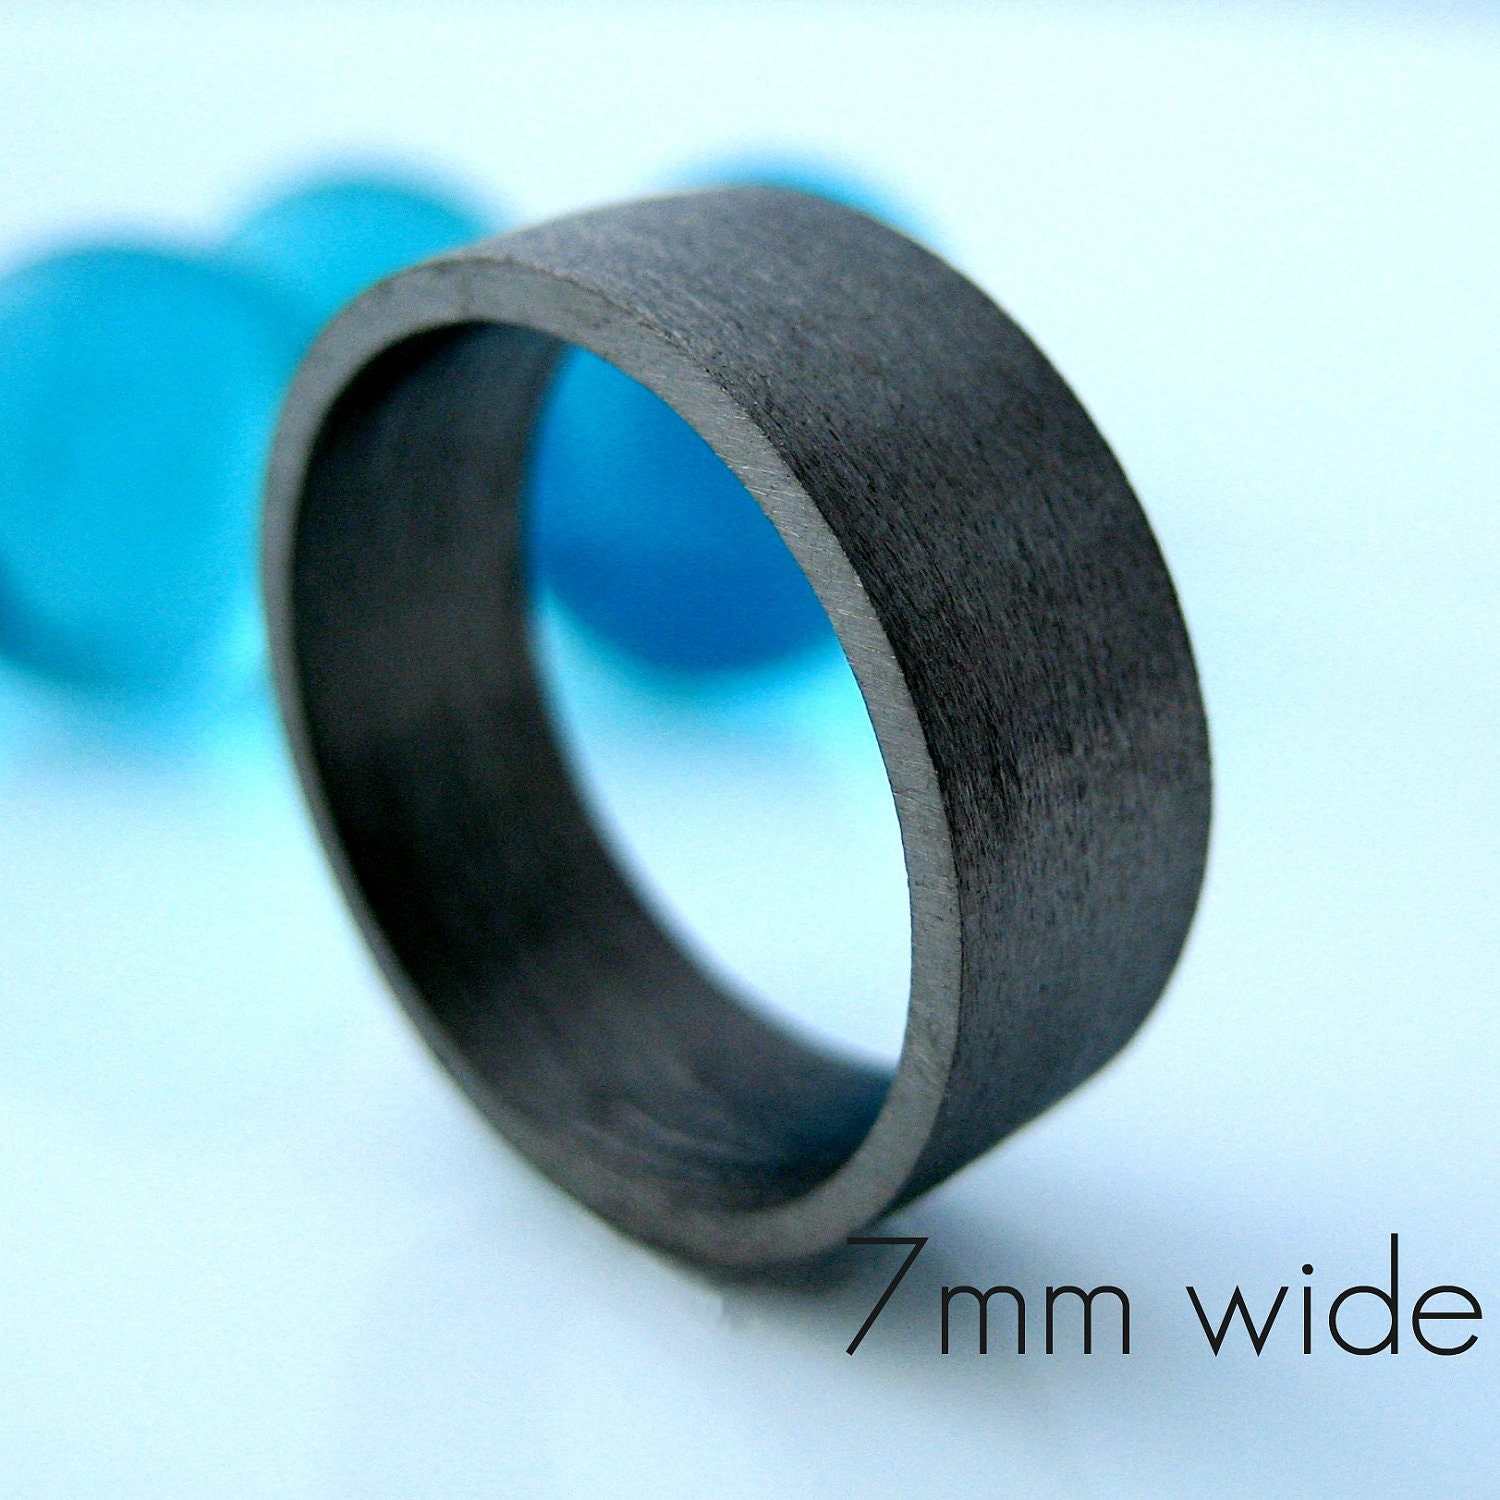 7mm wedding band black gold ring men's ring etsy